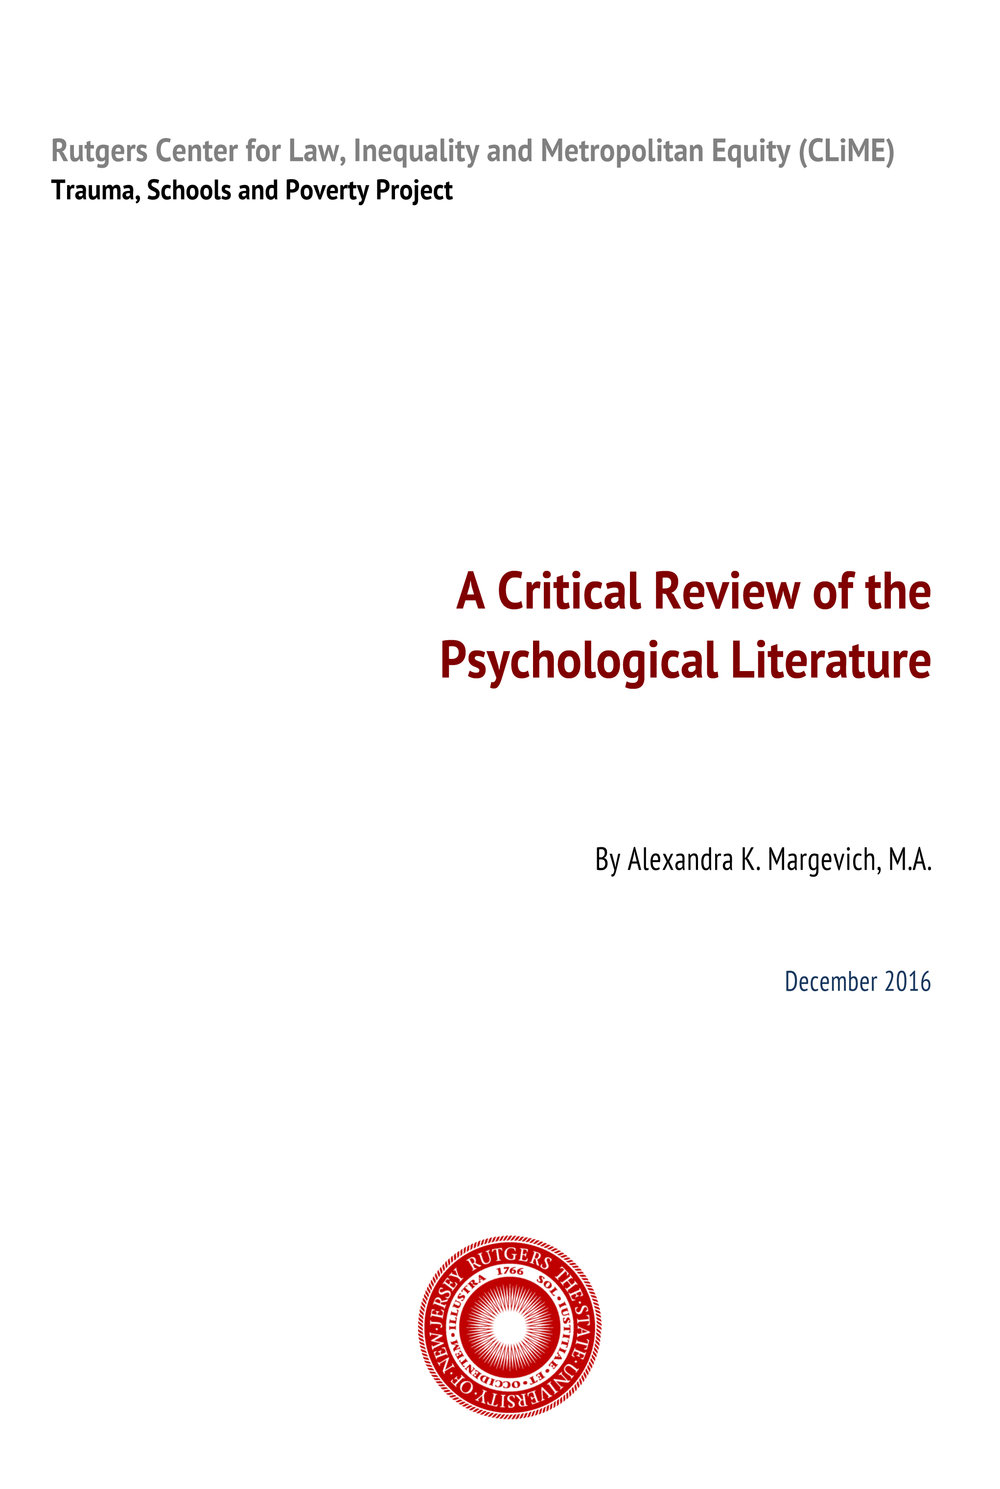 - CLICK HERE FOR A COMPREHENSIVE LITERATURE REVIEW